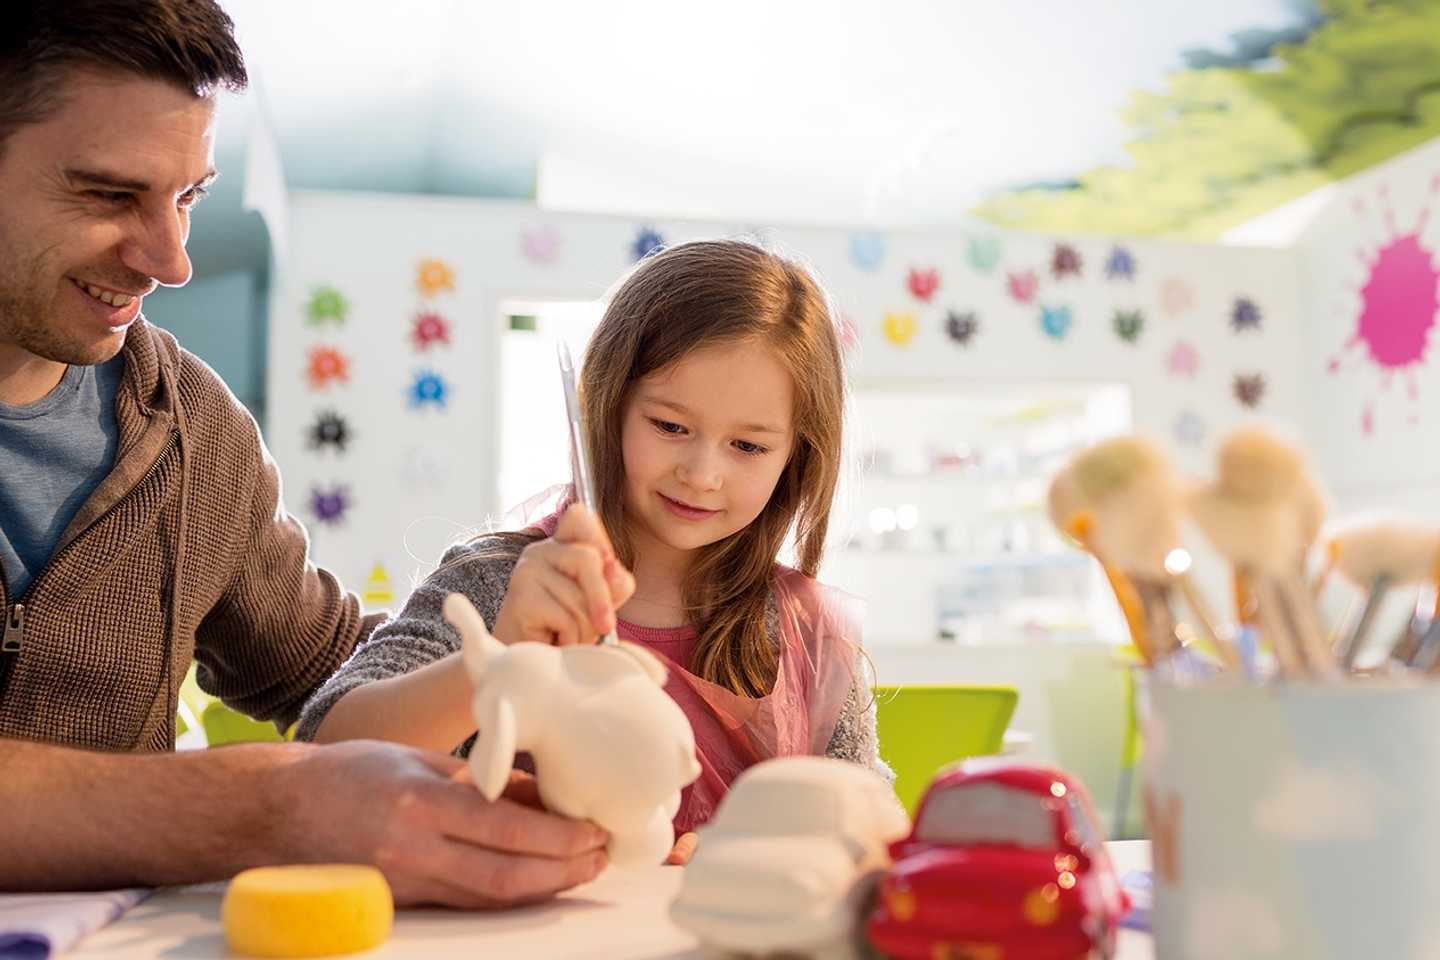 Dad and daughter painting pottery